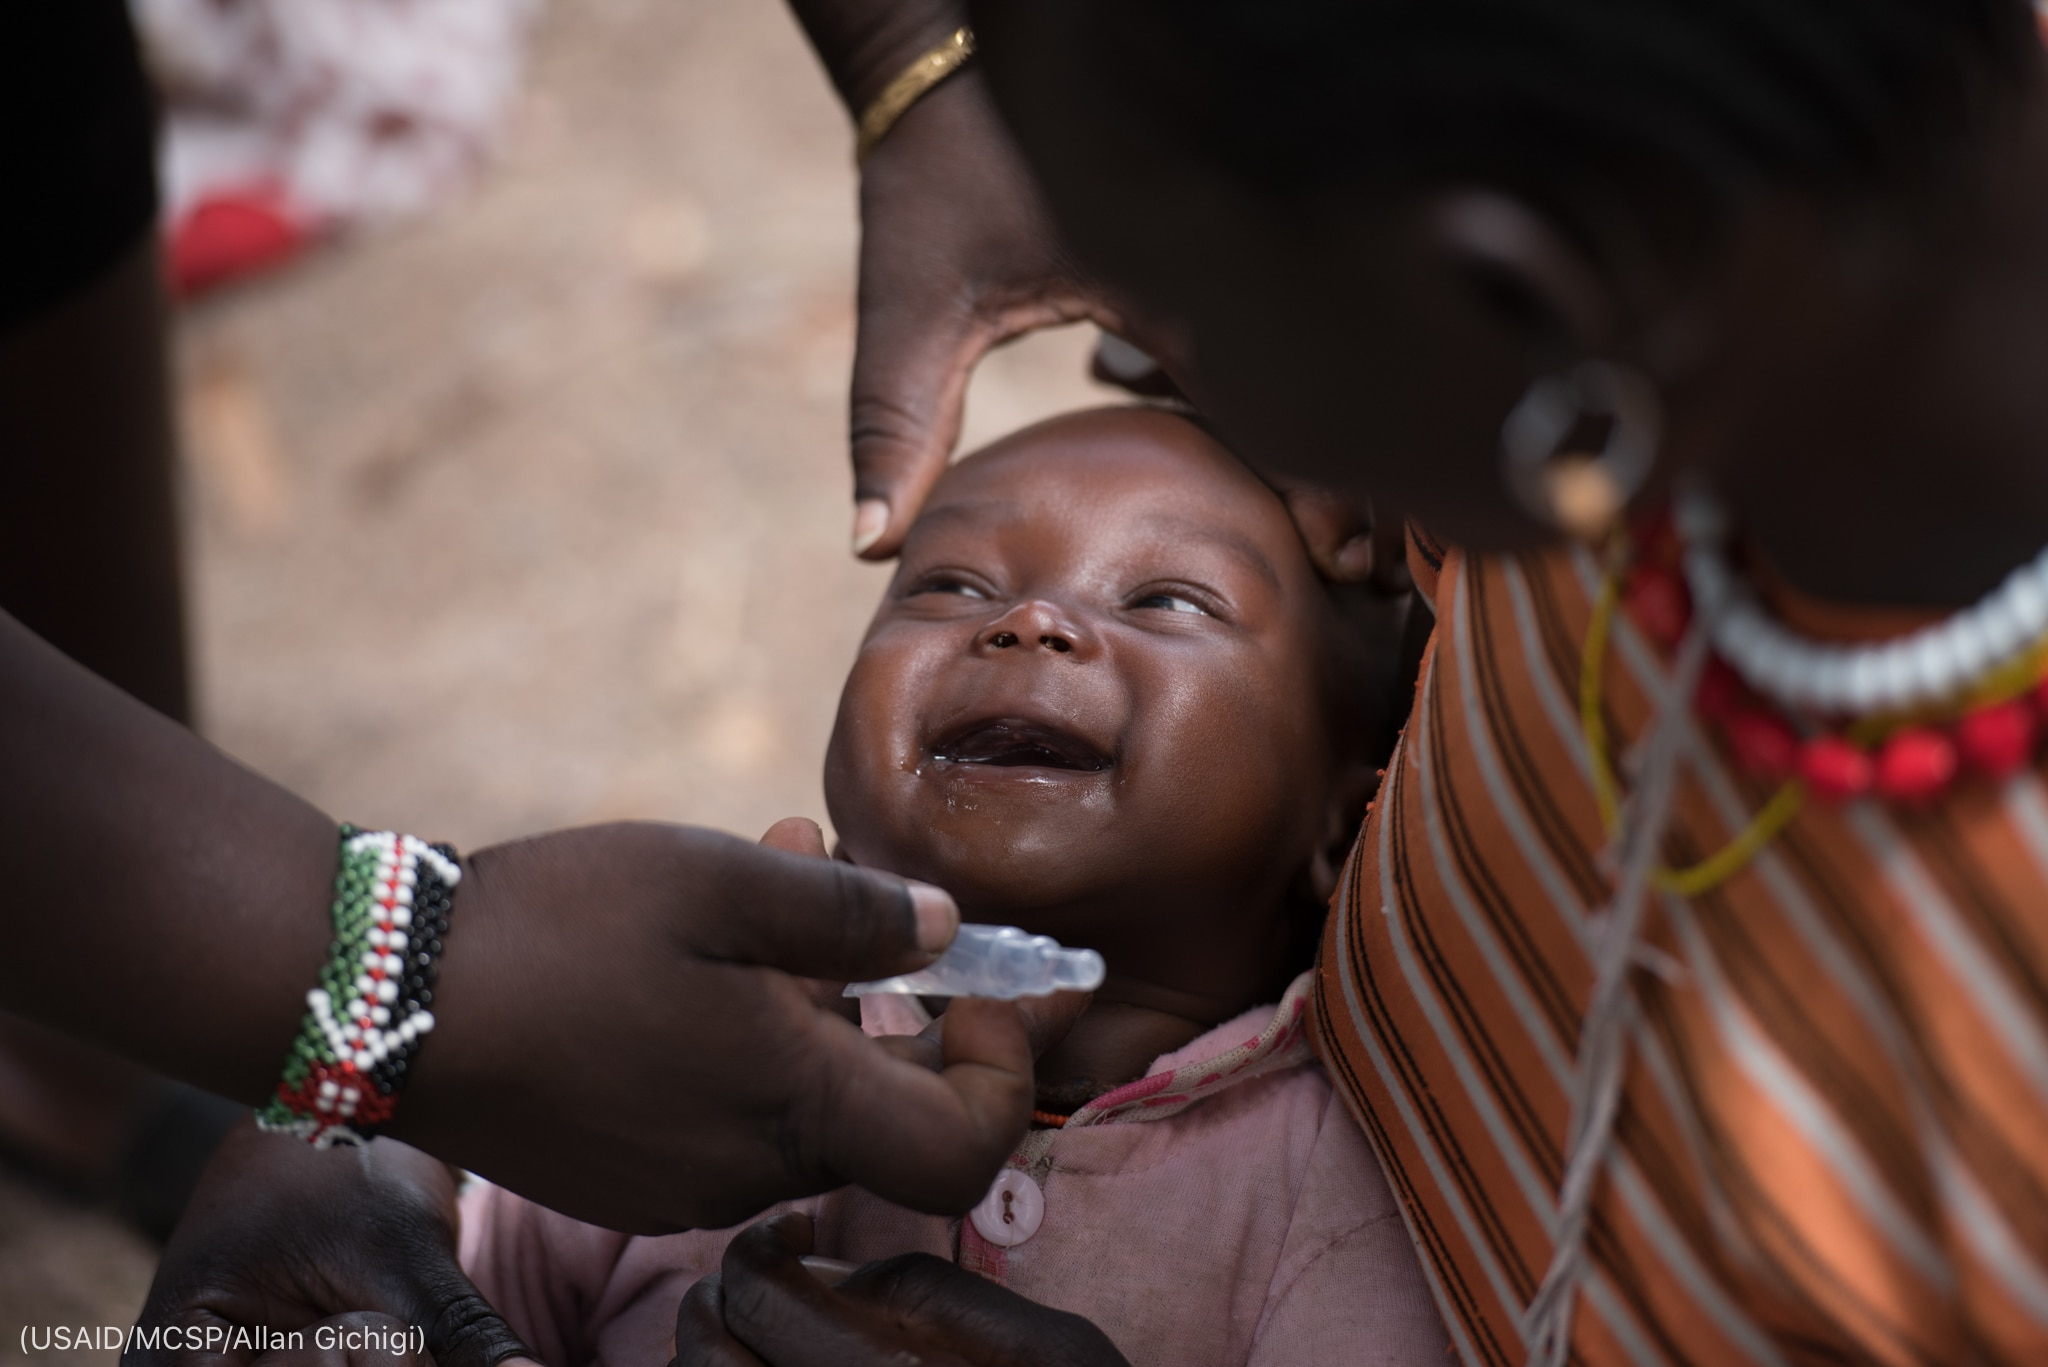 Baby smiling while adult holds plastic vial (USAID/MCSP/Allan Gichigi)